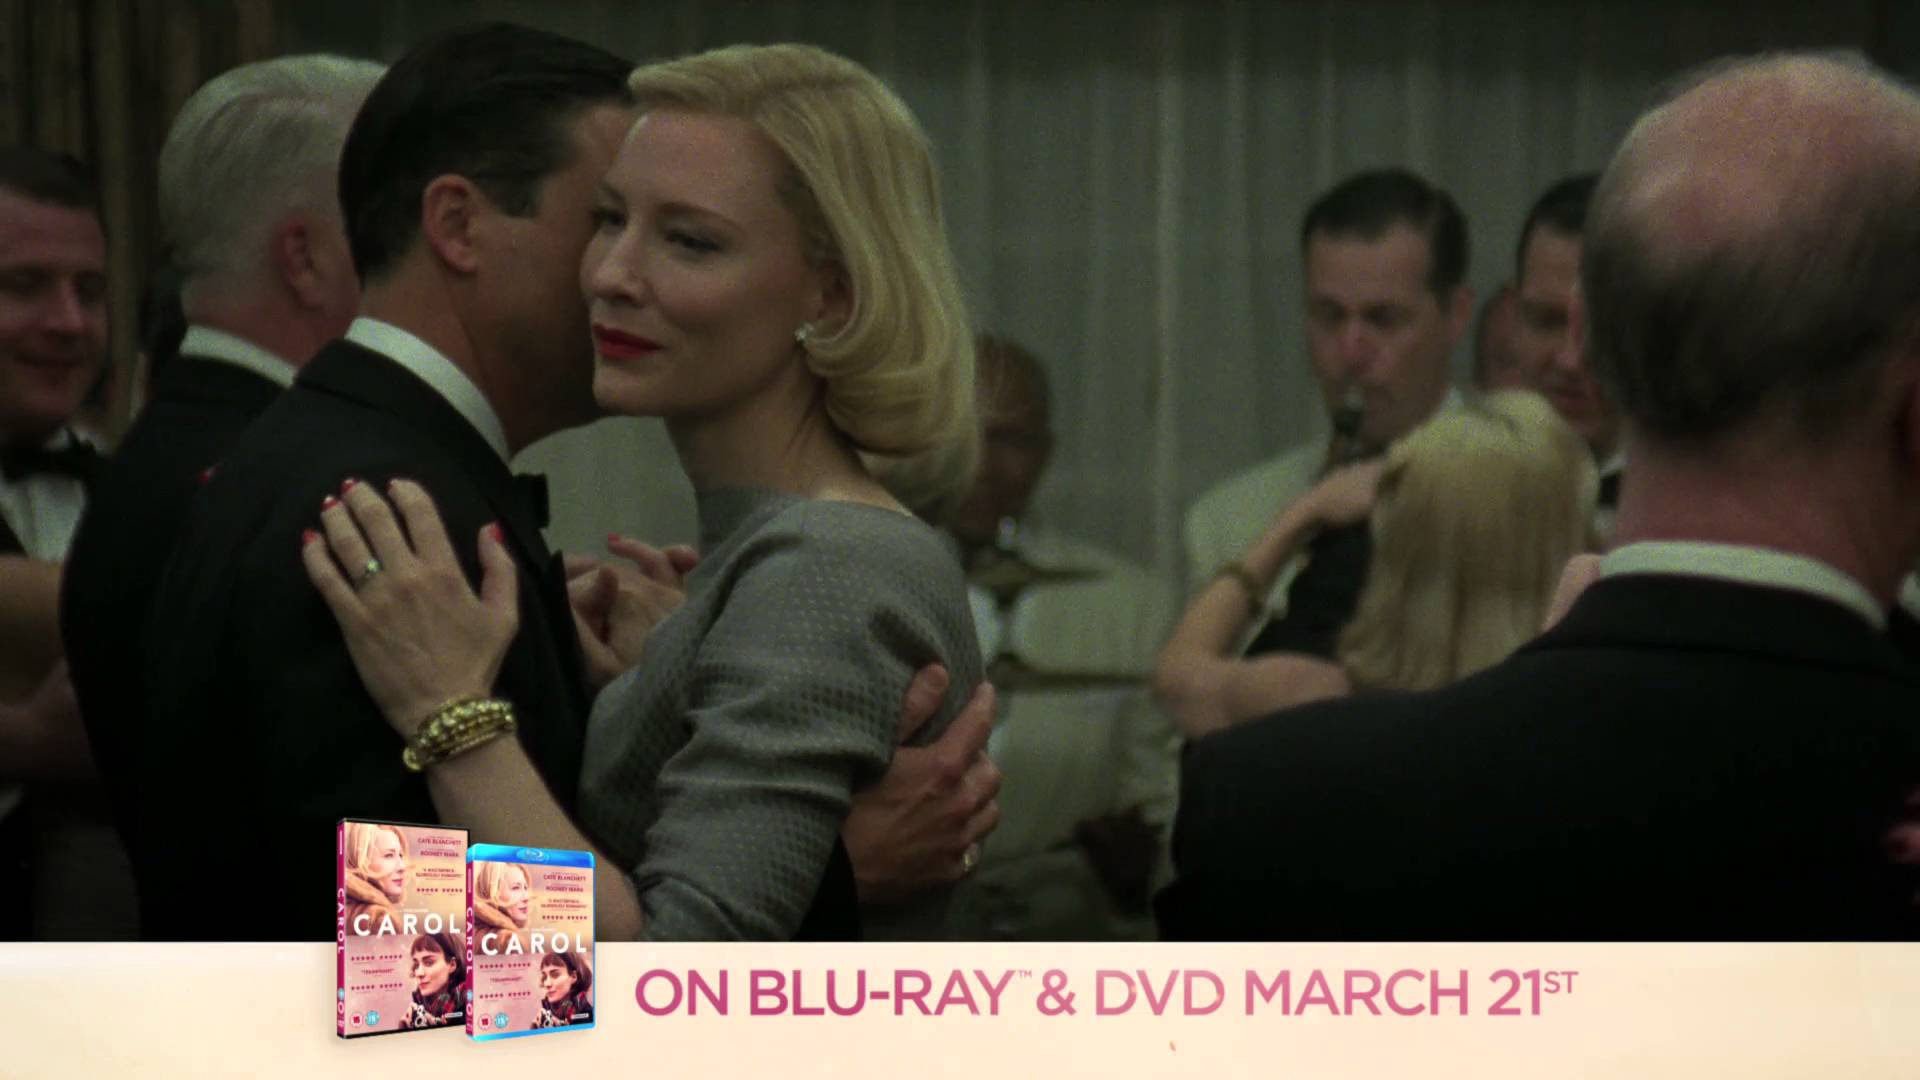 "CAROL – 20"" TV spot – On Blu-ray & DVD March 21st"